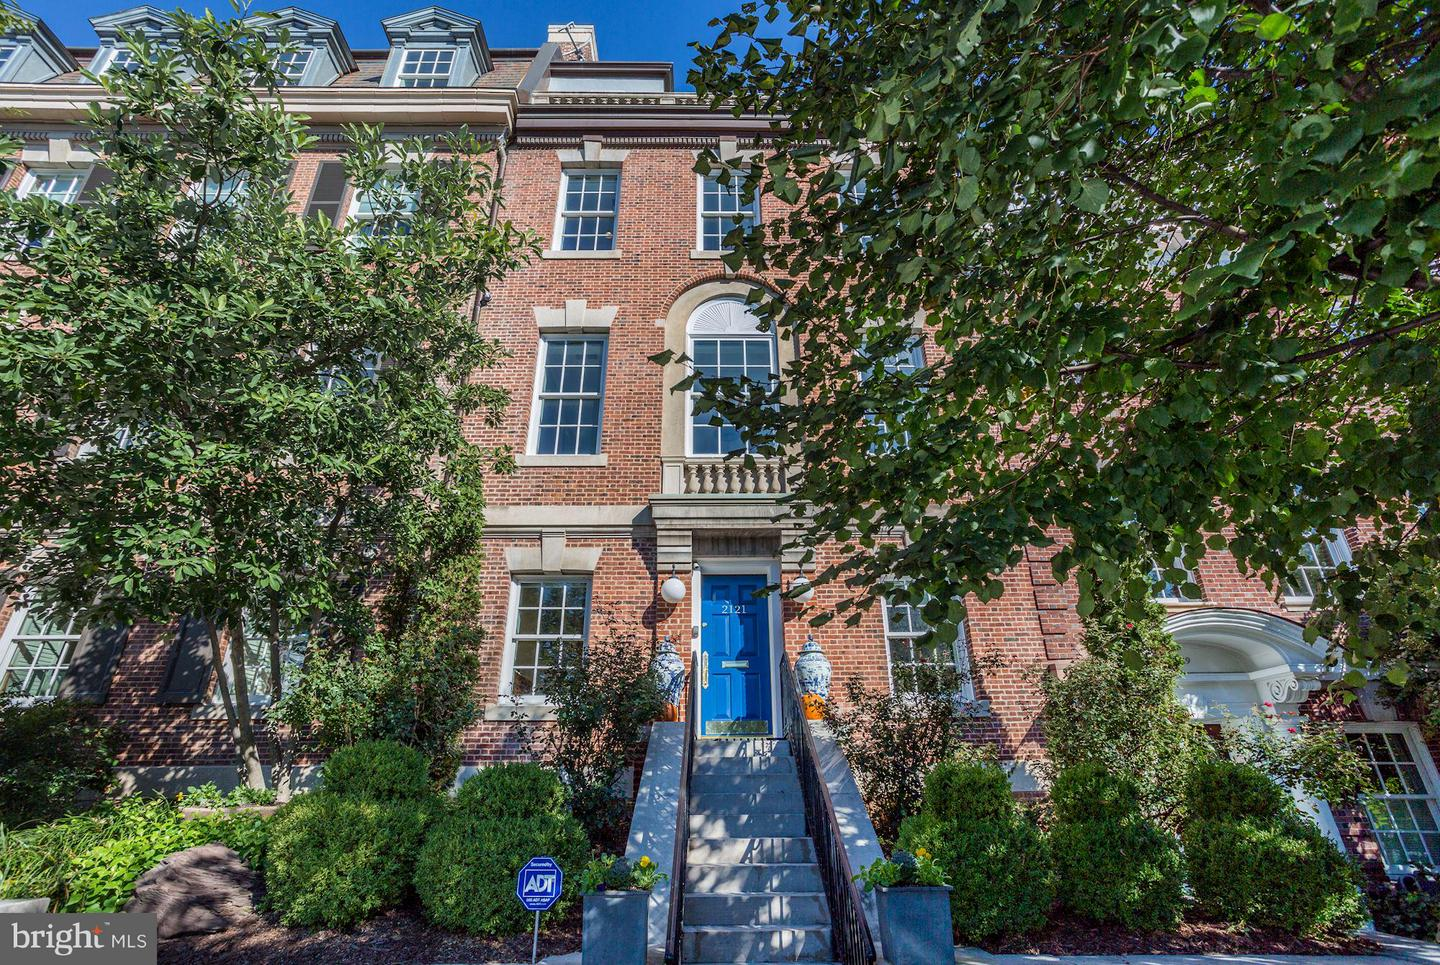 Single Family Home for Sale at 2121 S St NW 2121 S St NW Washington, District Of Columbia 20008 United States